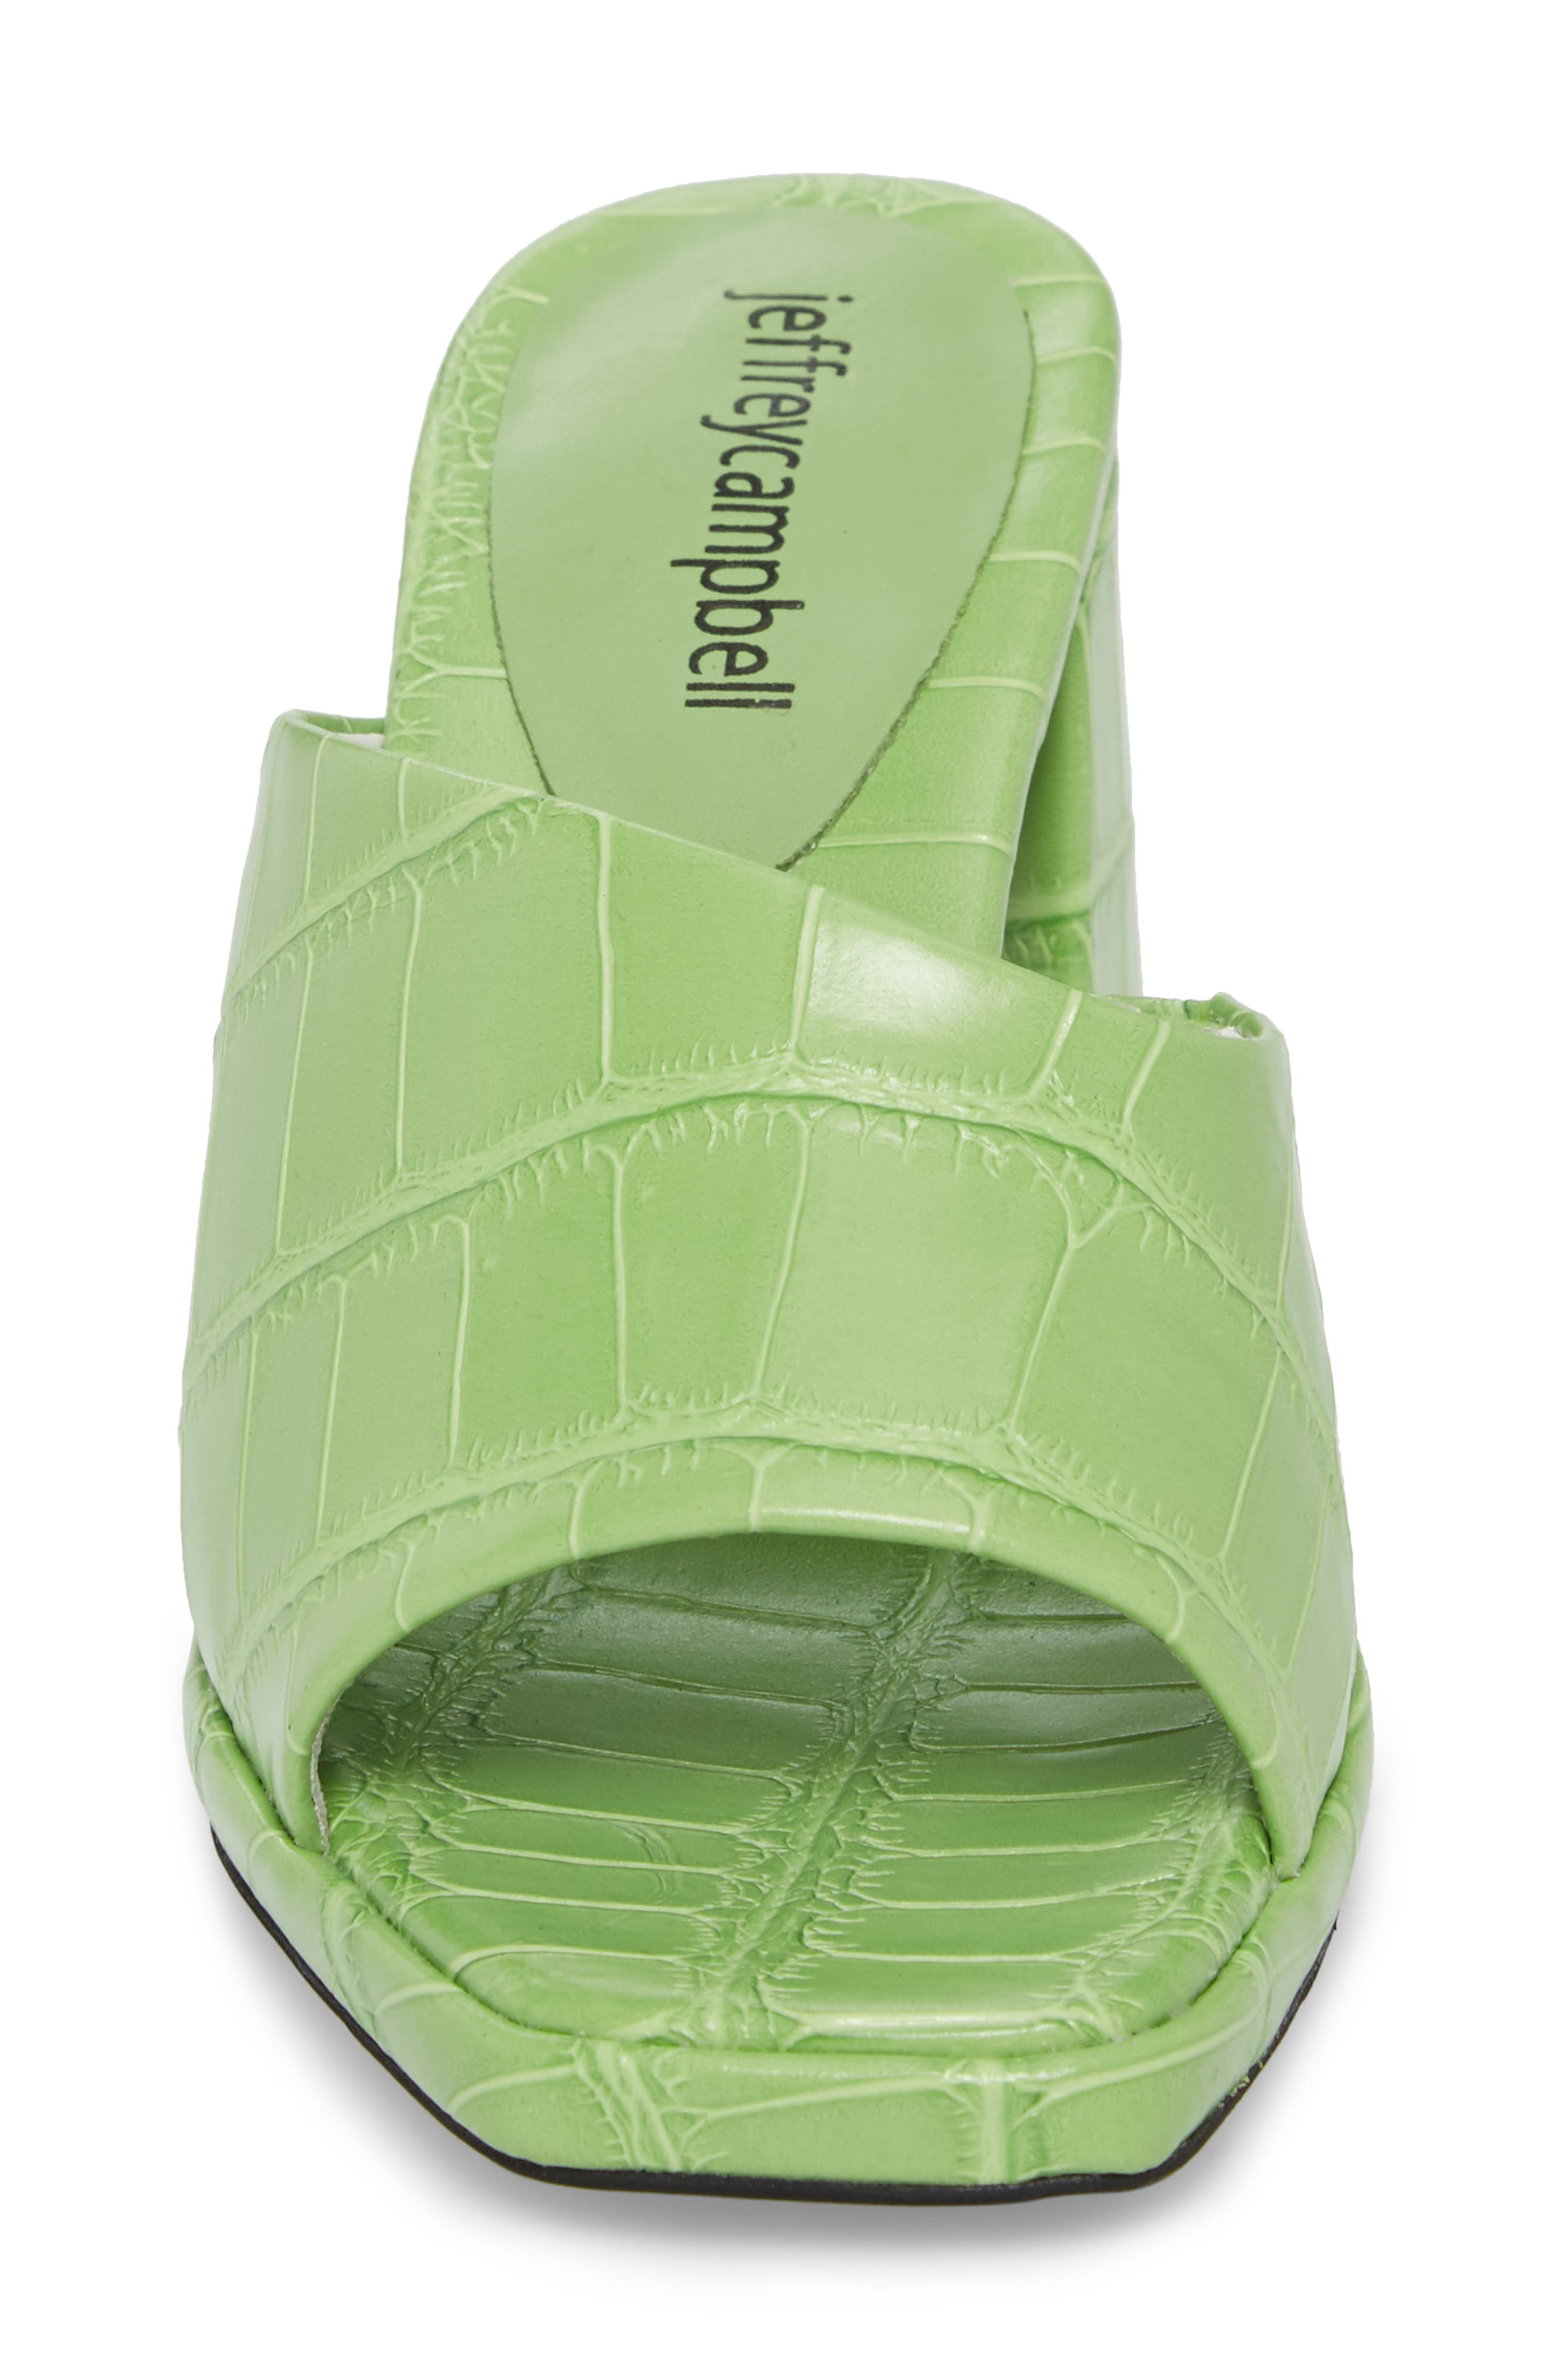 Suzuci Sandal,                             Alternate thumbnail 4, color,                             Green Leather